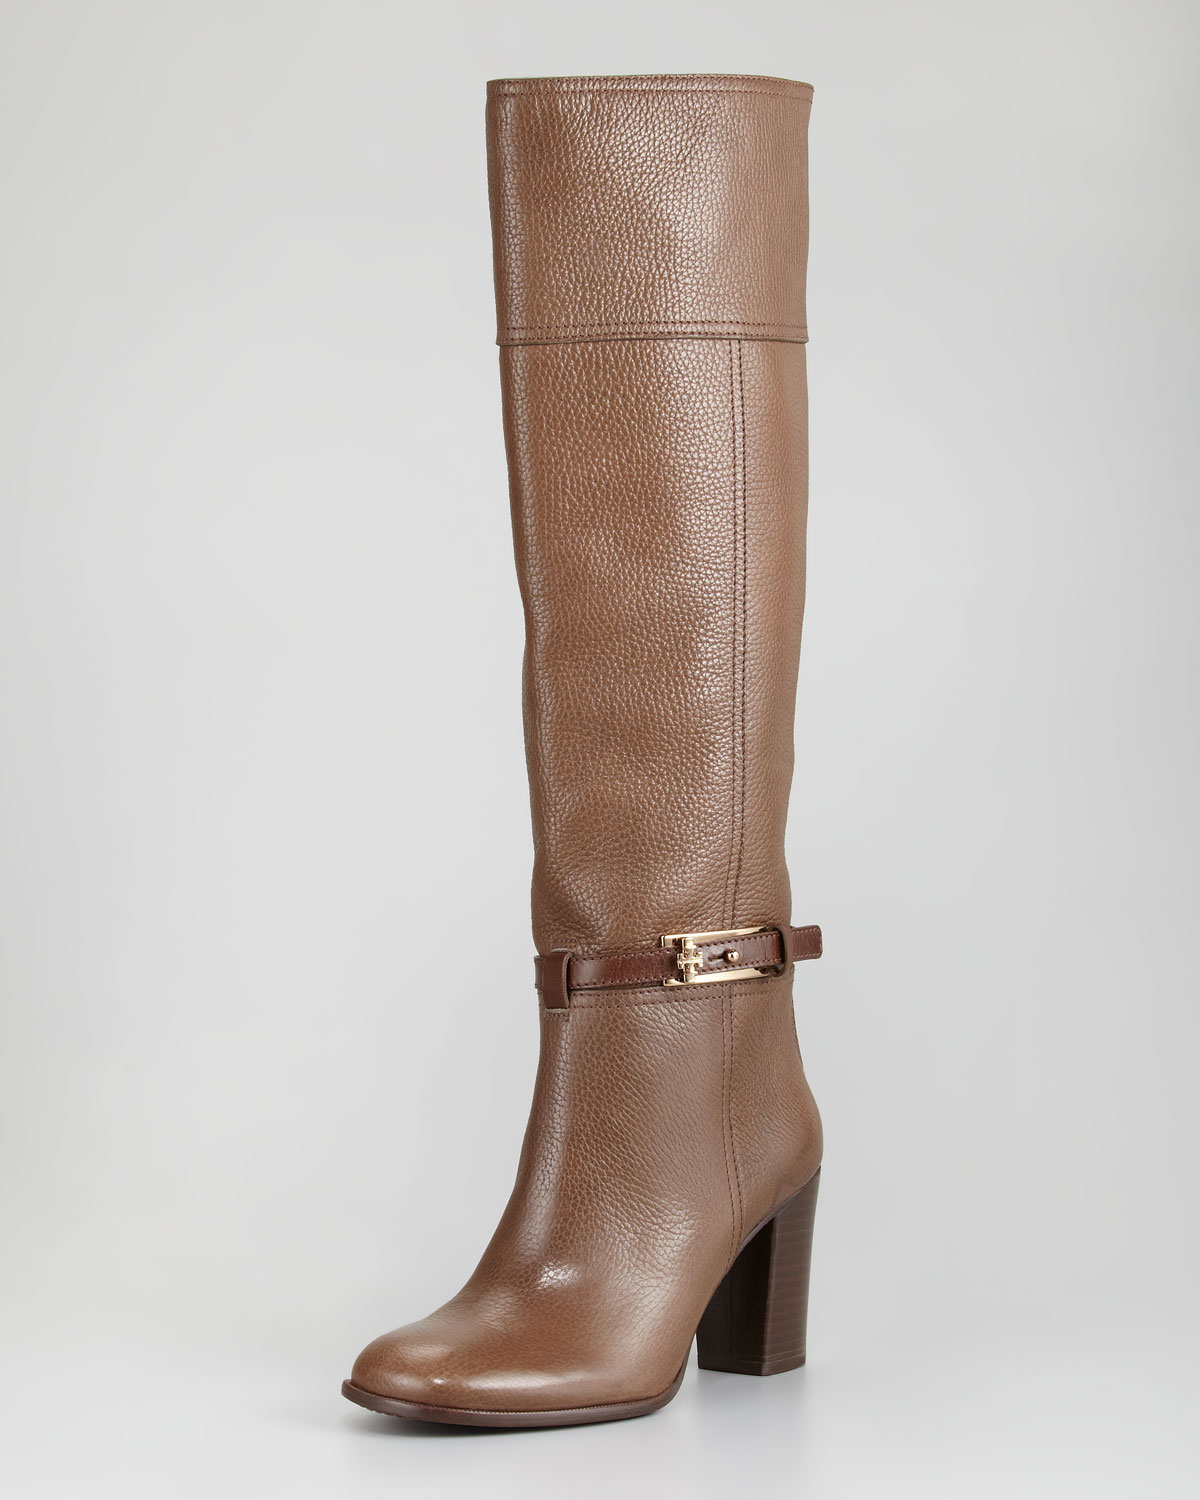 9392856c171f Lyst - Tory Burch Jenna Tumbled Leather Knee Boot in Brown